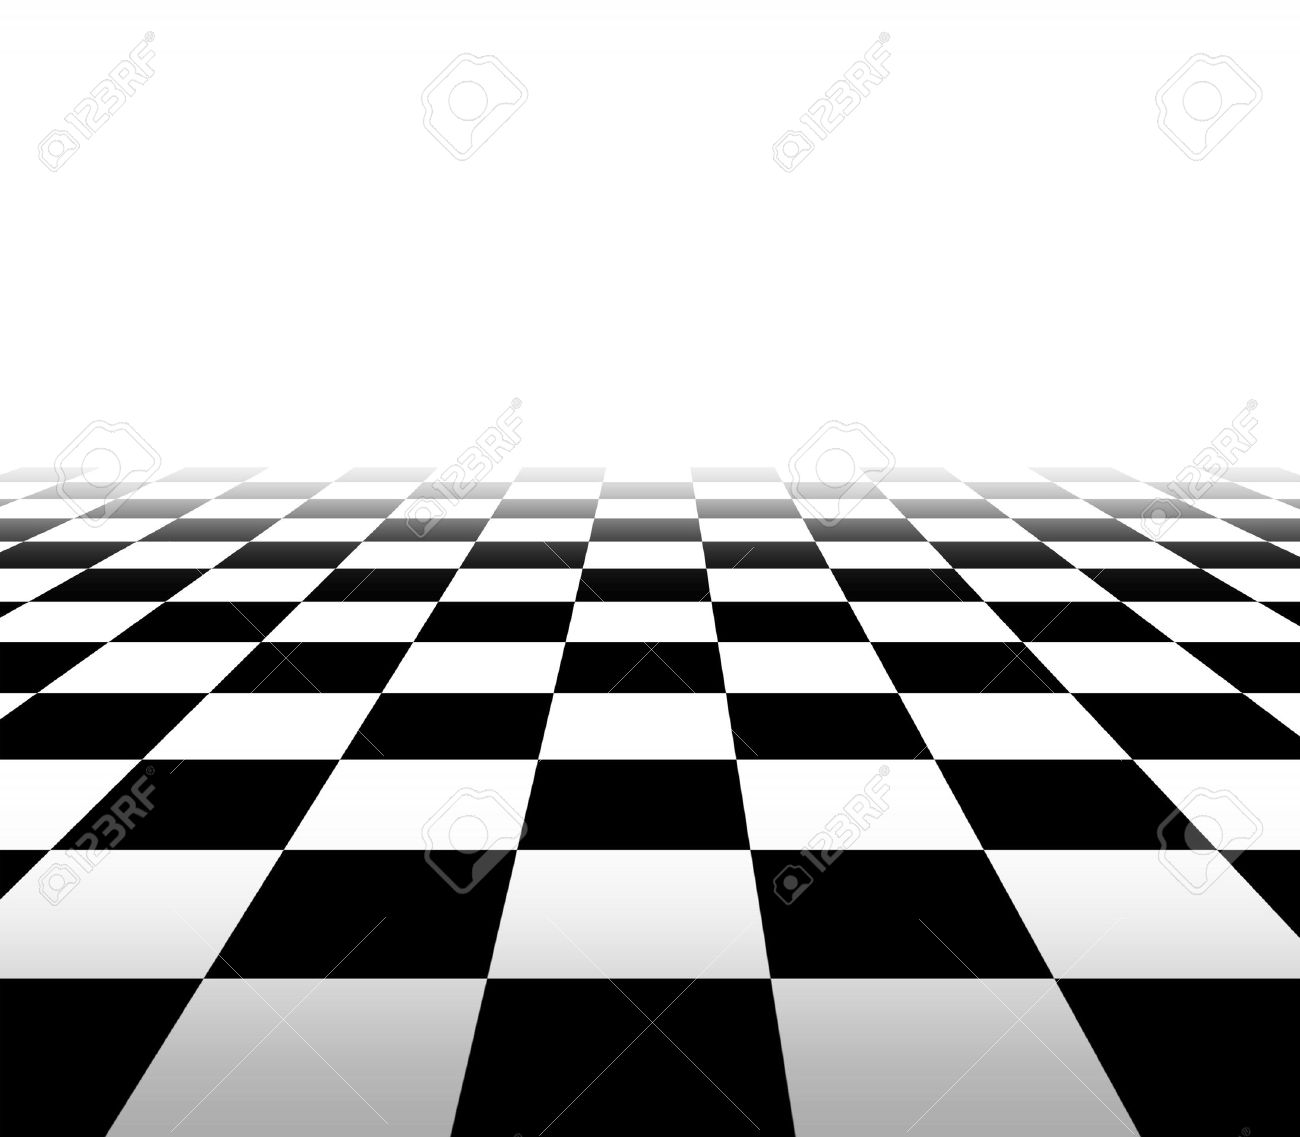 Checkered background floor pattern in perspective with a black and white geometric design fading to white in the distance with a blank area for your text Stock Photo - 13203550